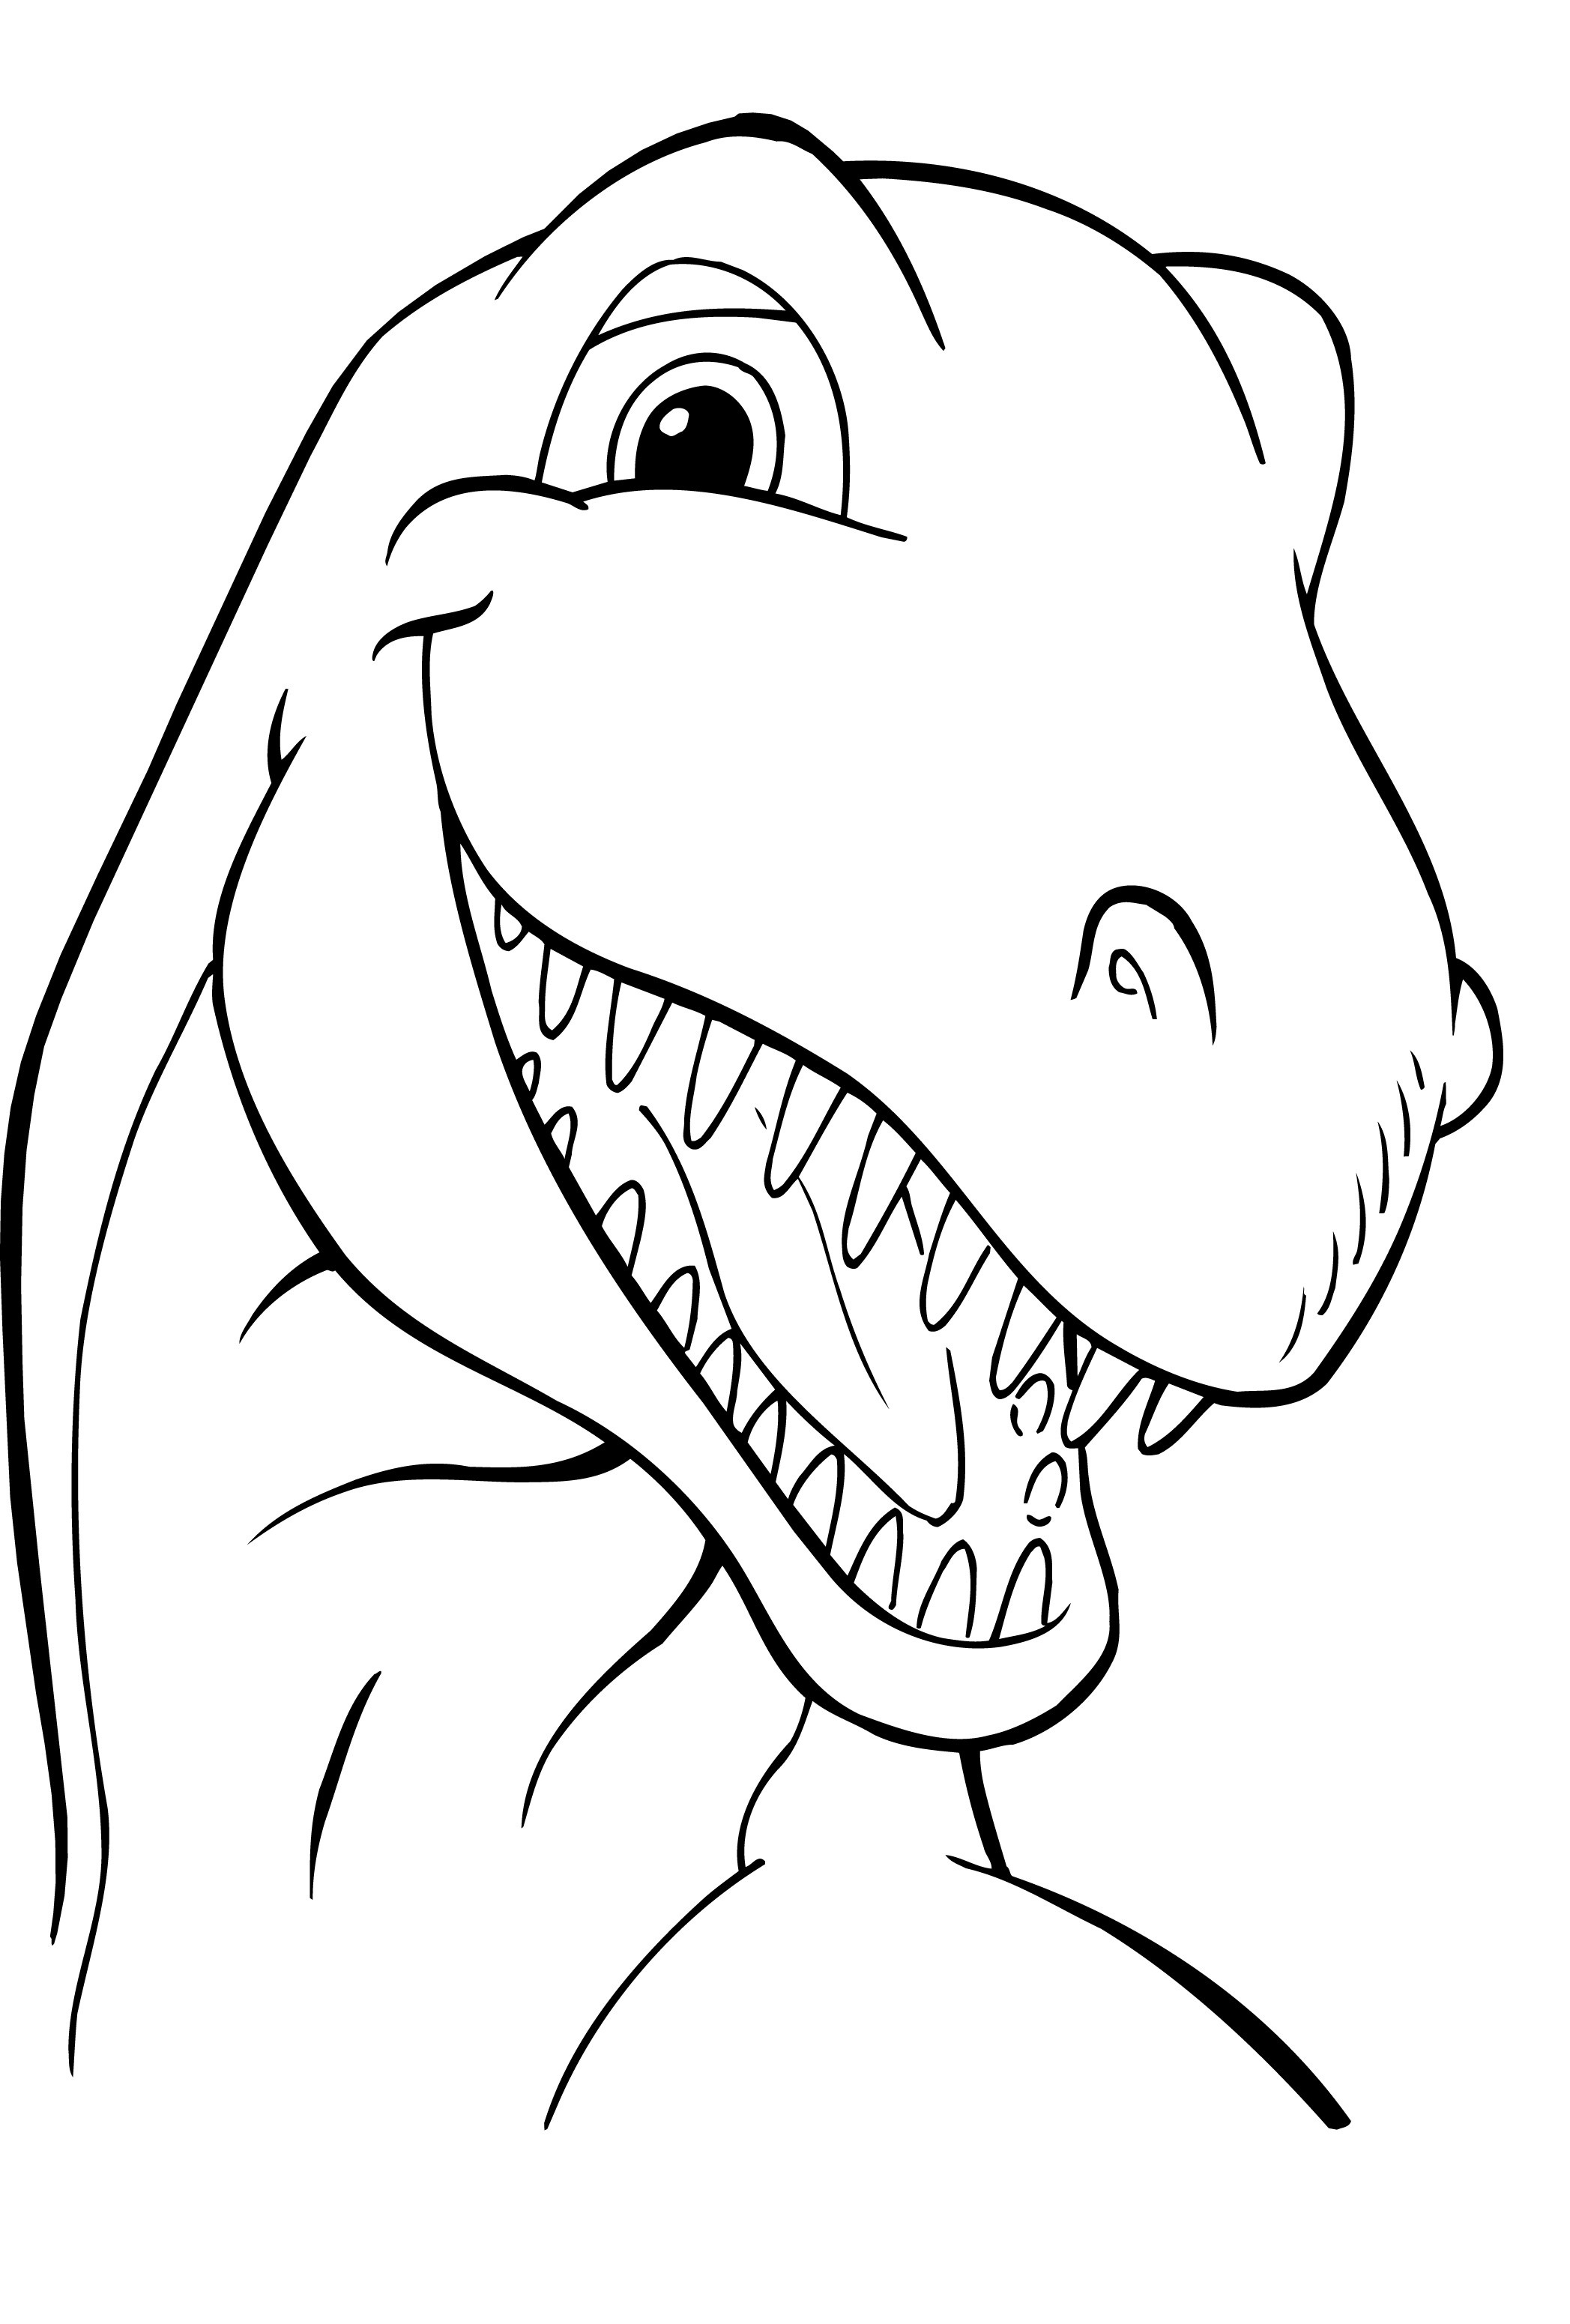 Free printable dinosaur coloring pages for kids for Free printable cartoon coloring pages